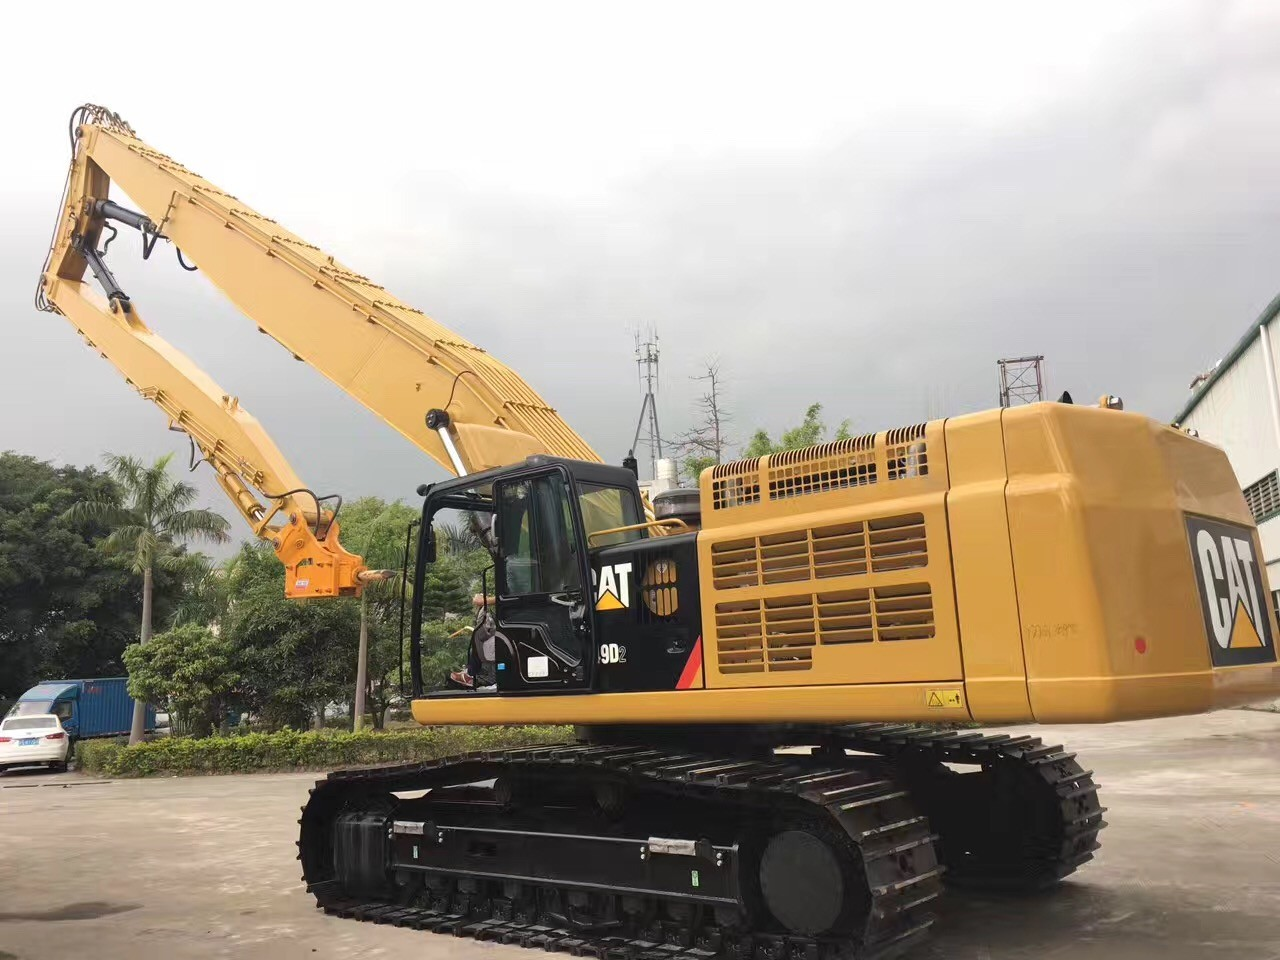 Excavator High Reach House Demolition Boom 24 Meter Q345b+Q550 Material Wear Resistance